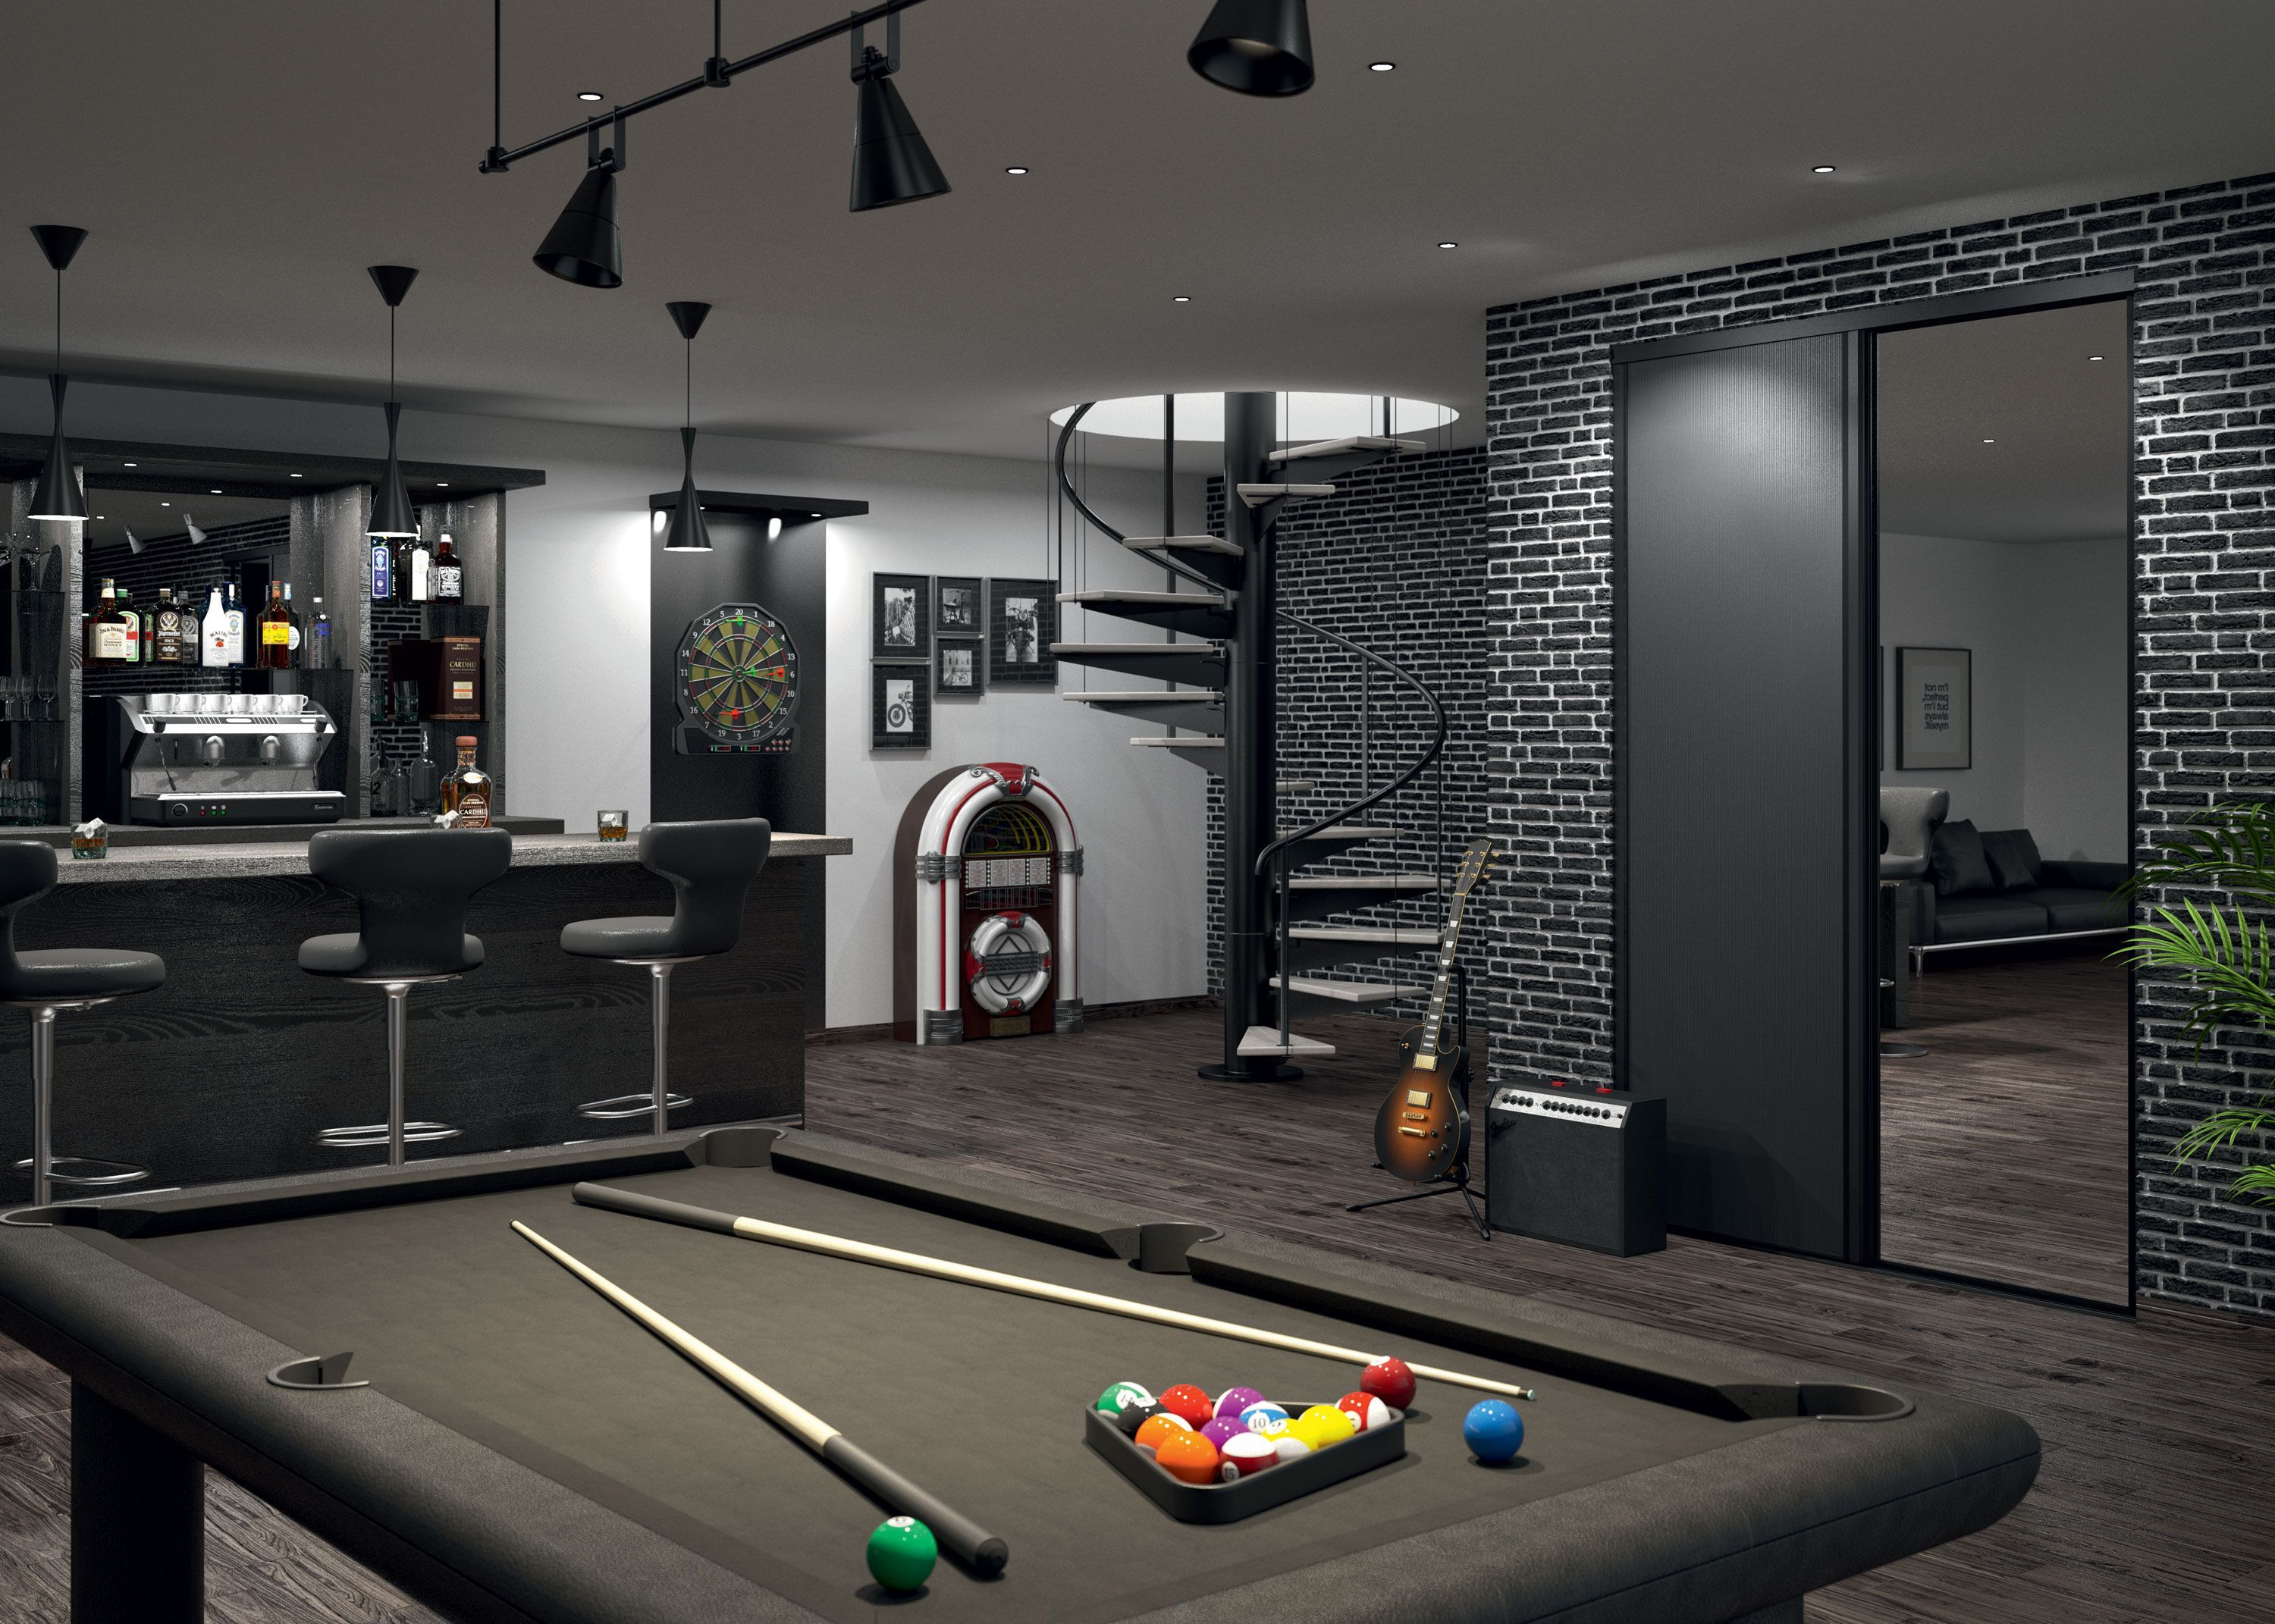 Gallery Of The Best Man Cave Ideas Get Inspiration For Creating Sports Themed Game Room Home Bar Garage Backyard She Game Room Man Room Home Entertainment